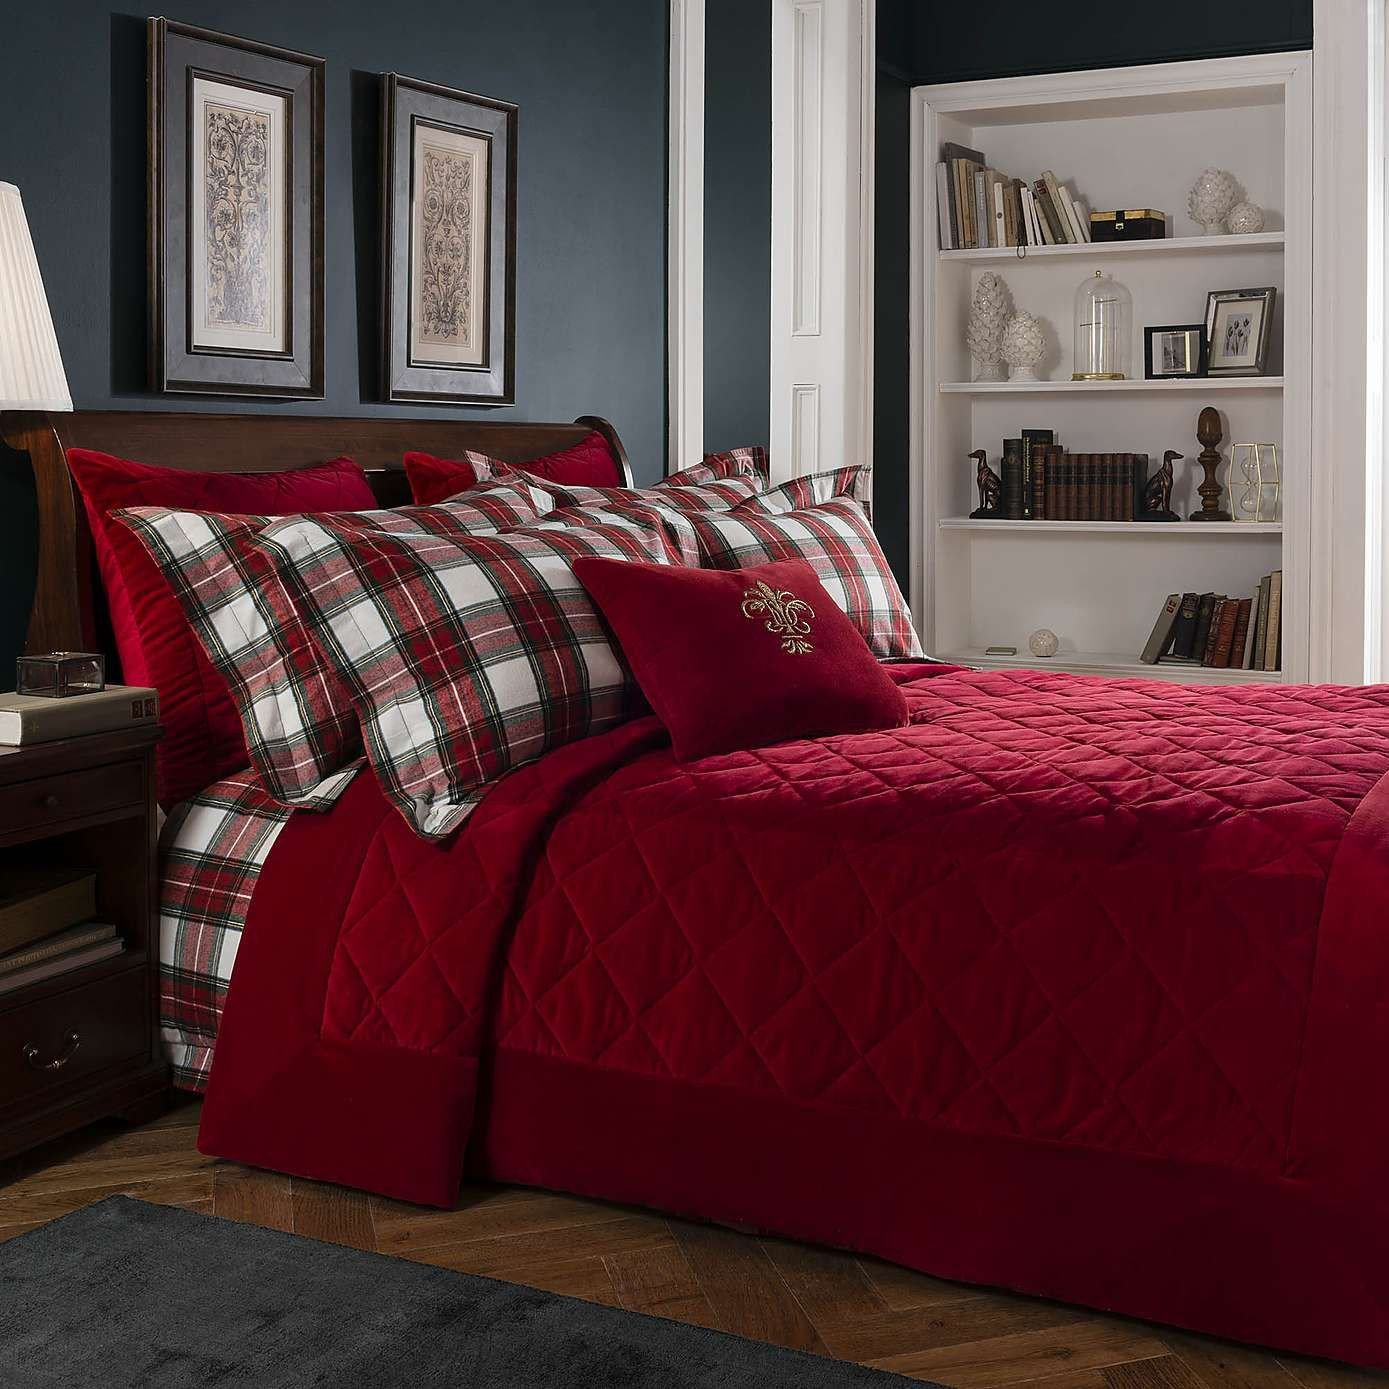 Red and Gray Bedroom Elegant Dorma isla Red Bedspread Dunelm